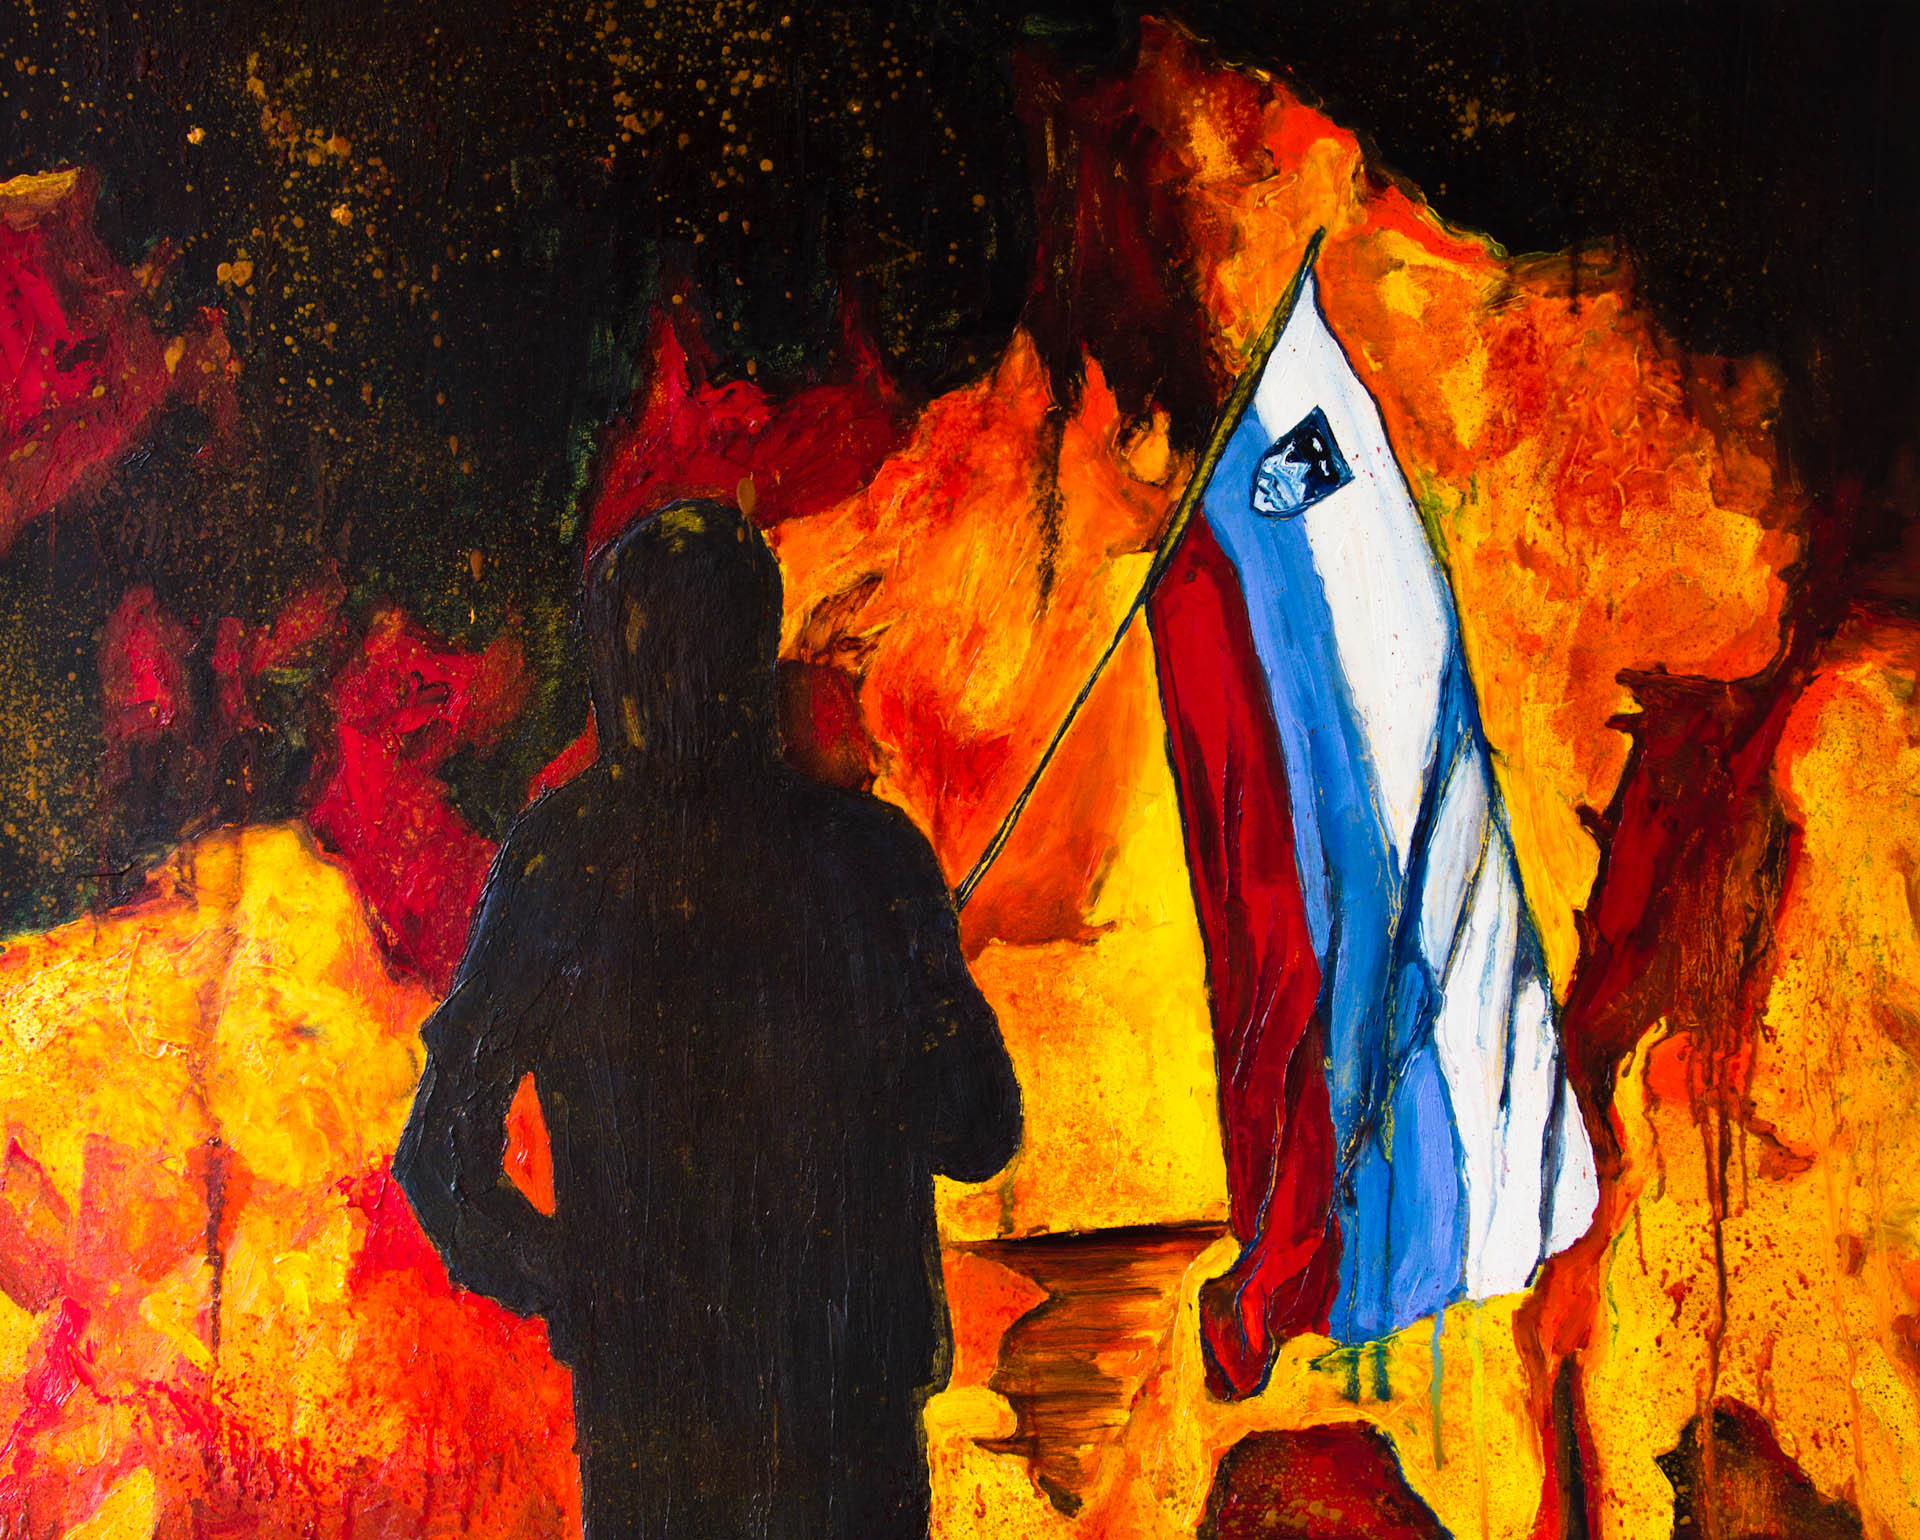 Slovene_uprising_oil_on_cardboard_80x100cm_2013.jpg